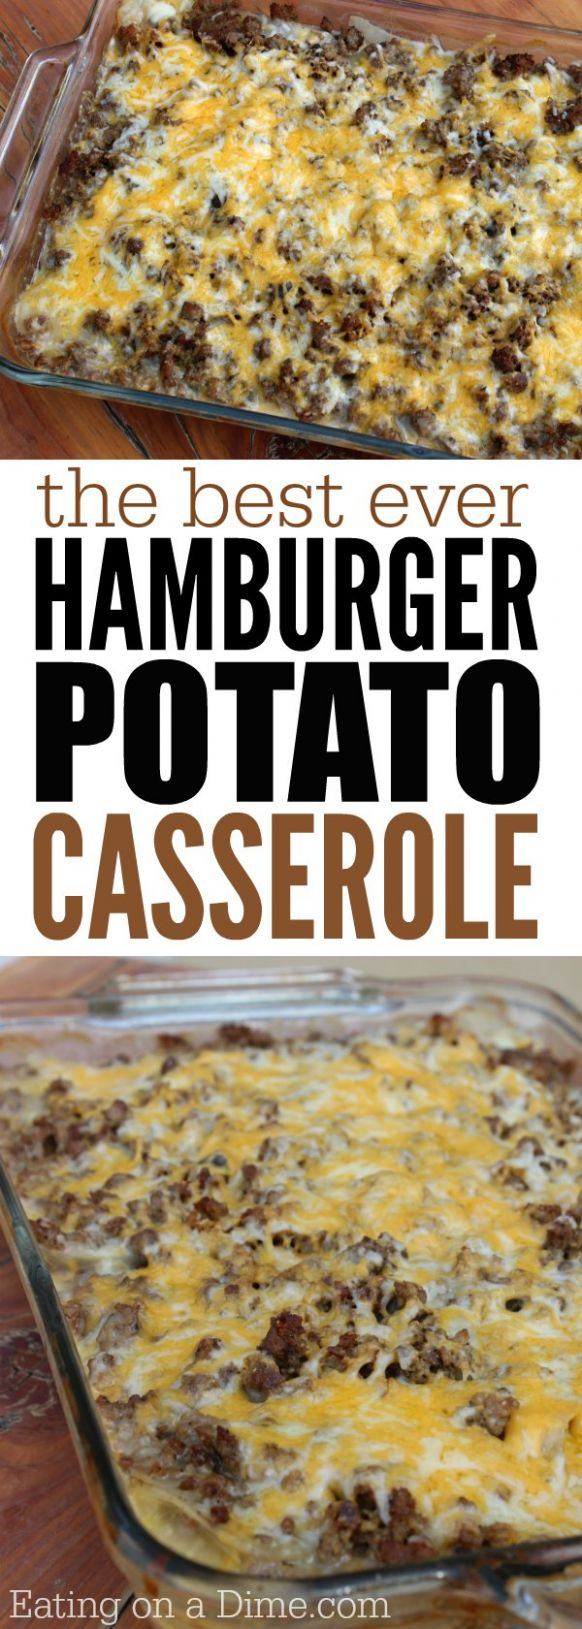 How to make Hamburger Casserole - Easy Recipes Made With Hamburger